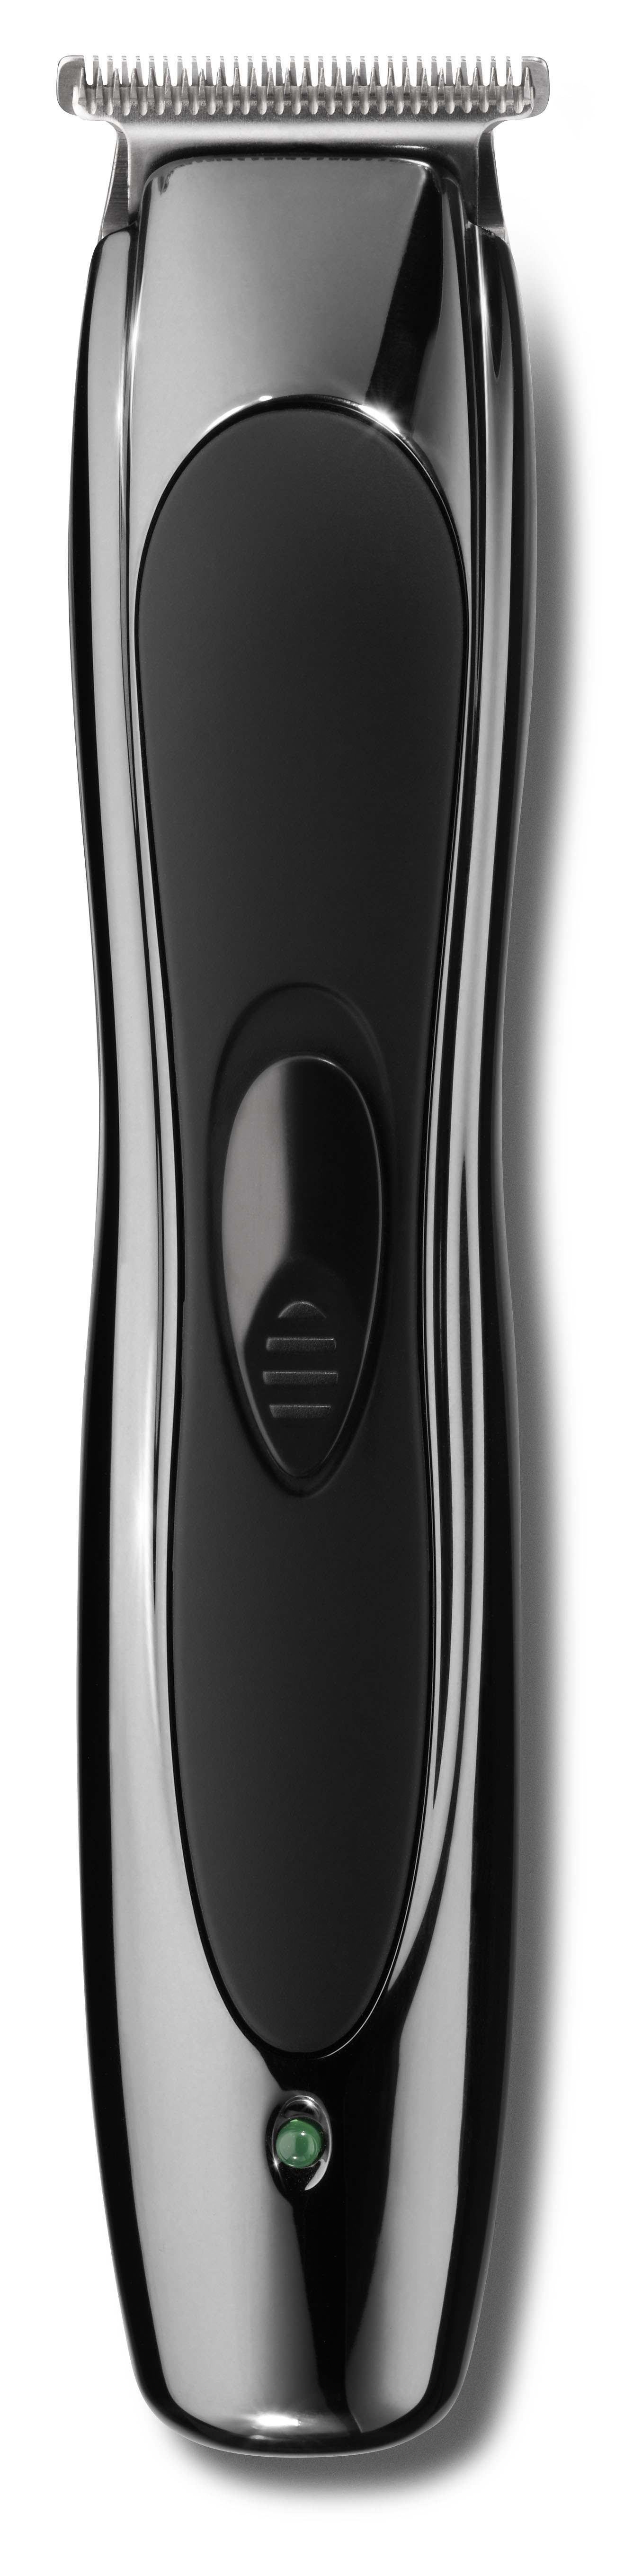 Andis BTF3 SlimLine 3 Lithium Cord-Cordless Trimmer #23895 EU/UK